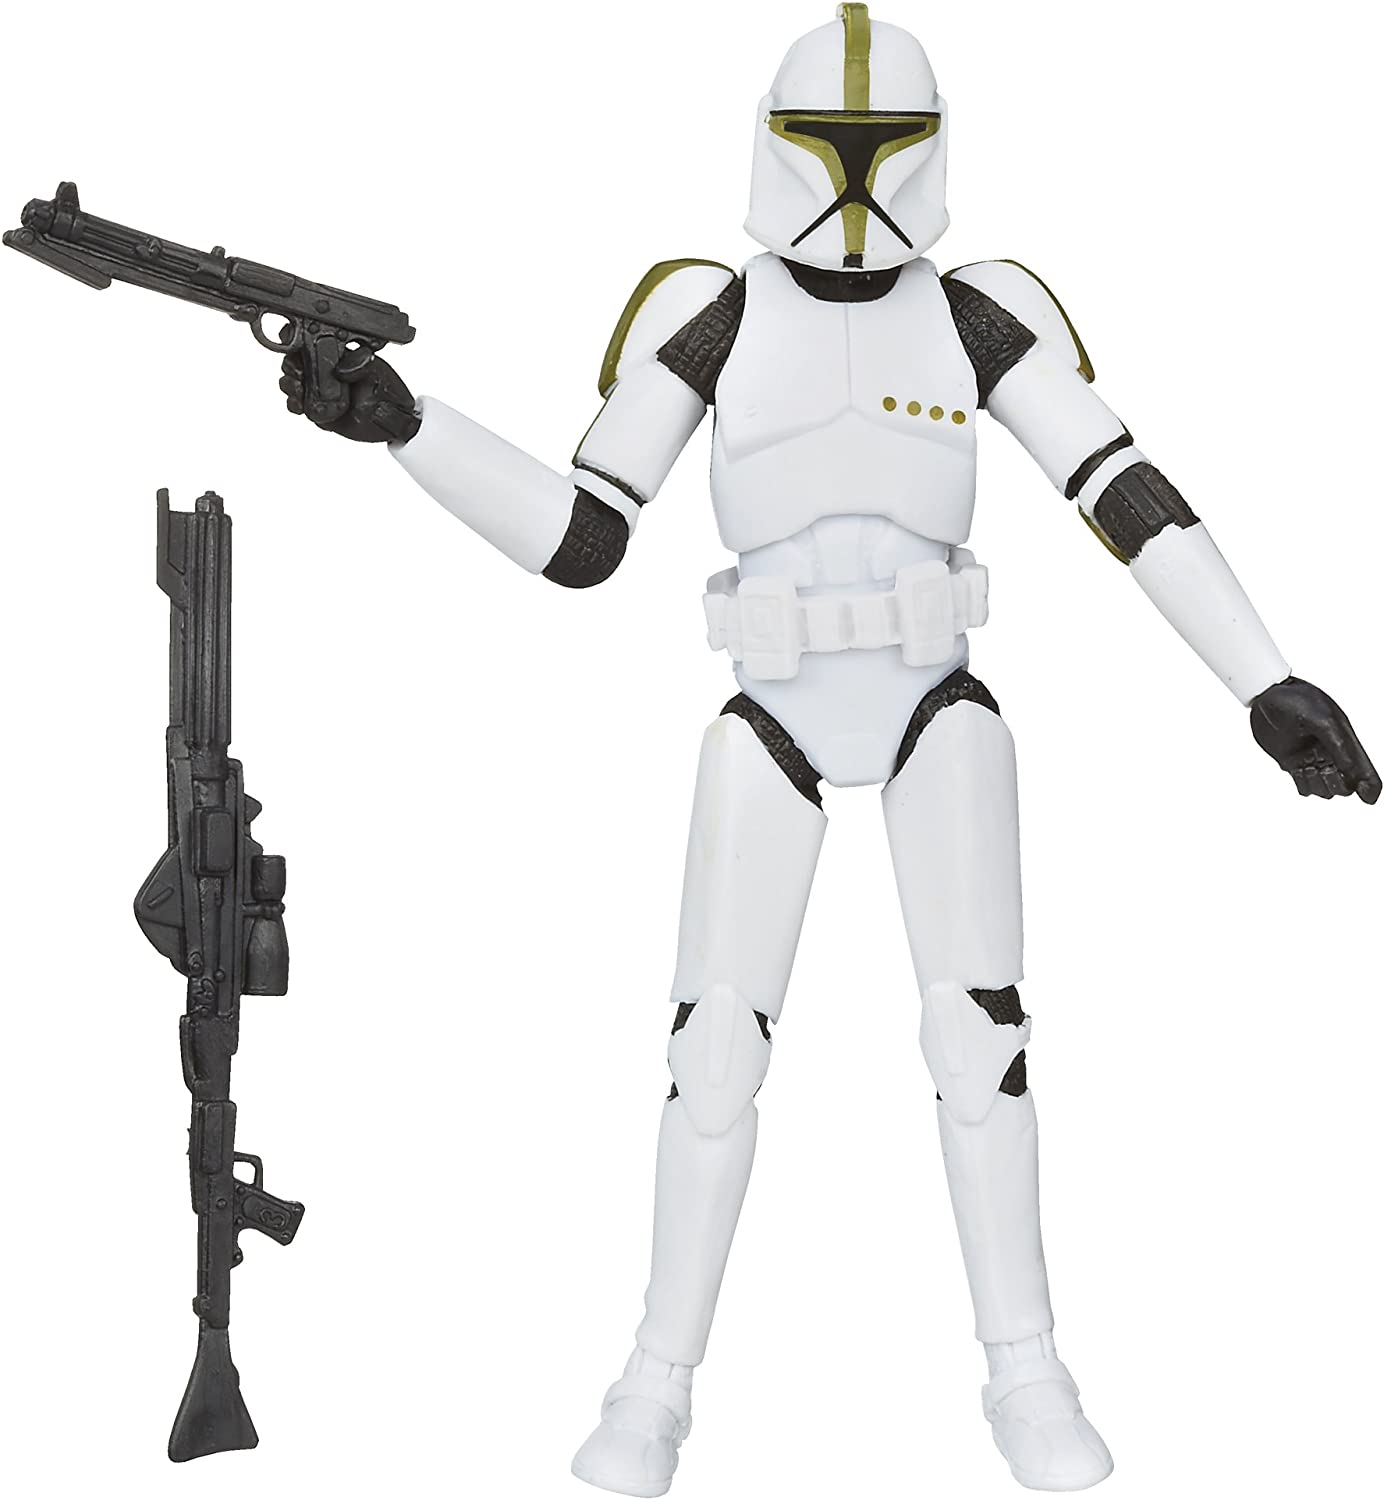 New and in stock Star Wars Black Series Clone Trooper Sergeant UK seller